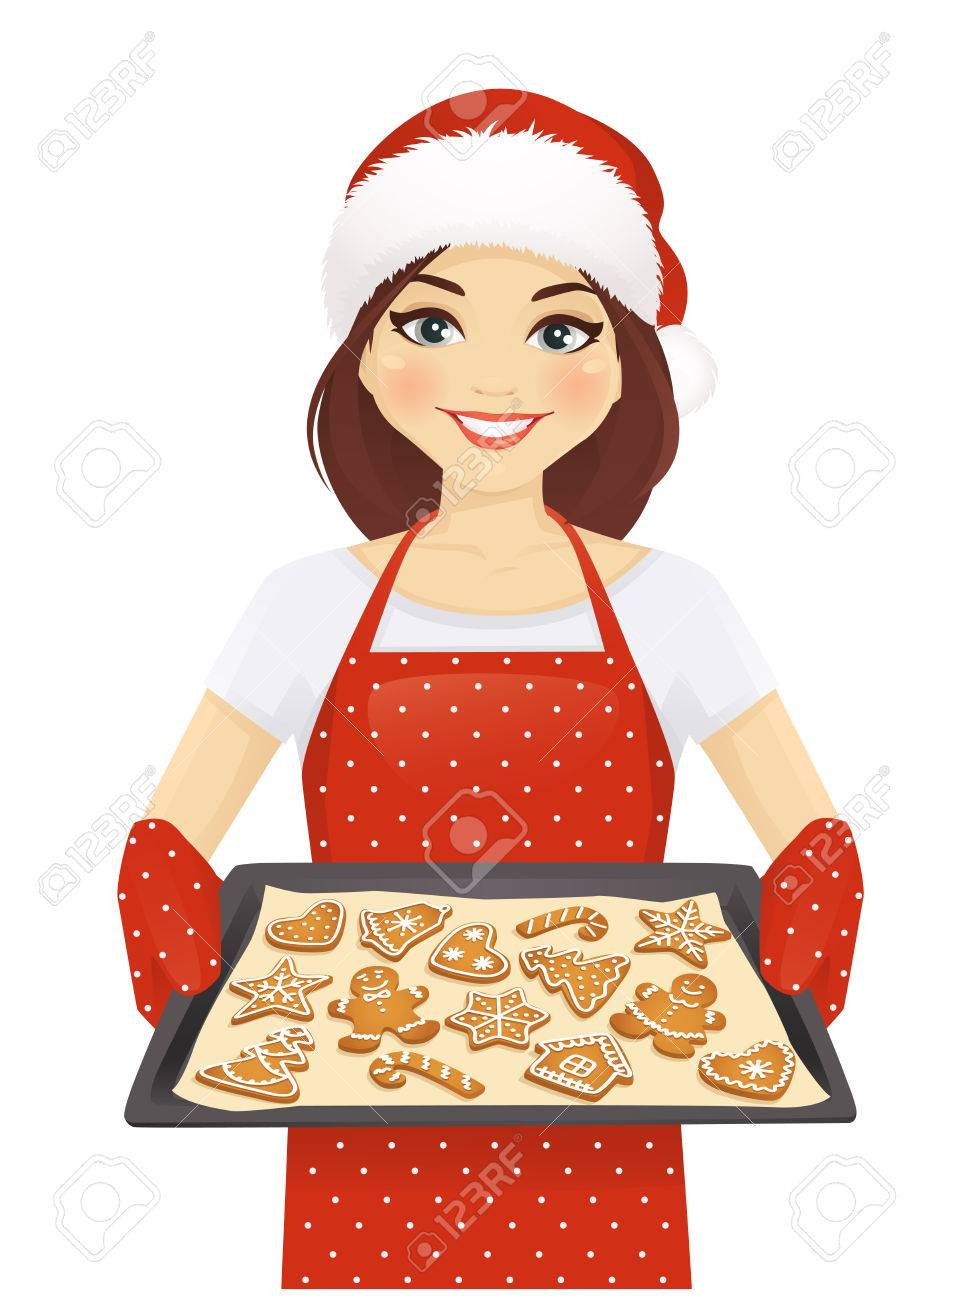 Baking Christmas Cookies Clipart.Smiling Woman Holding Baking Tray With Christmas Cookies Wearing